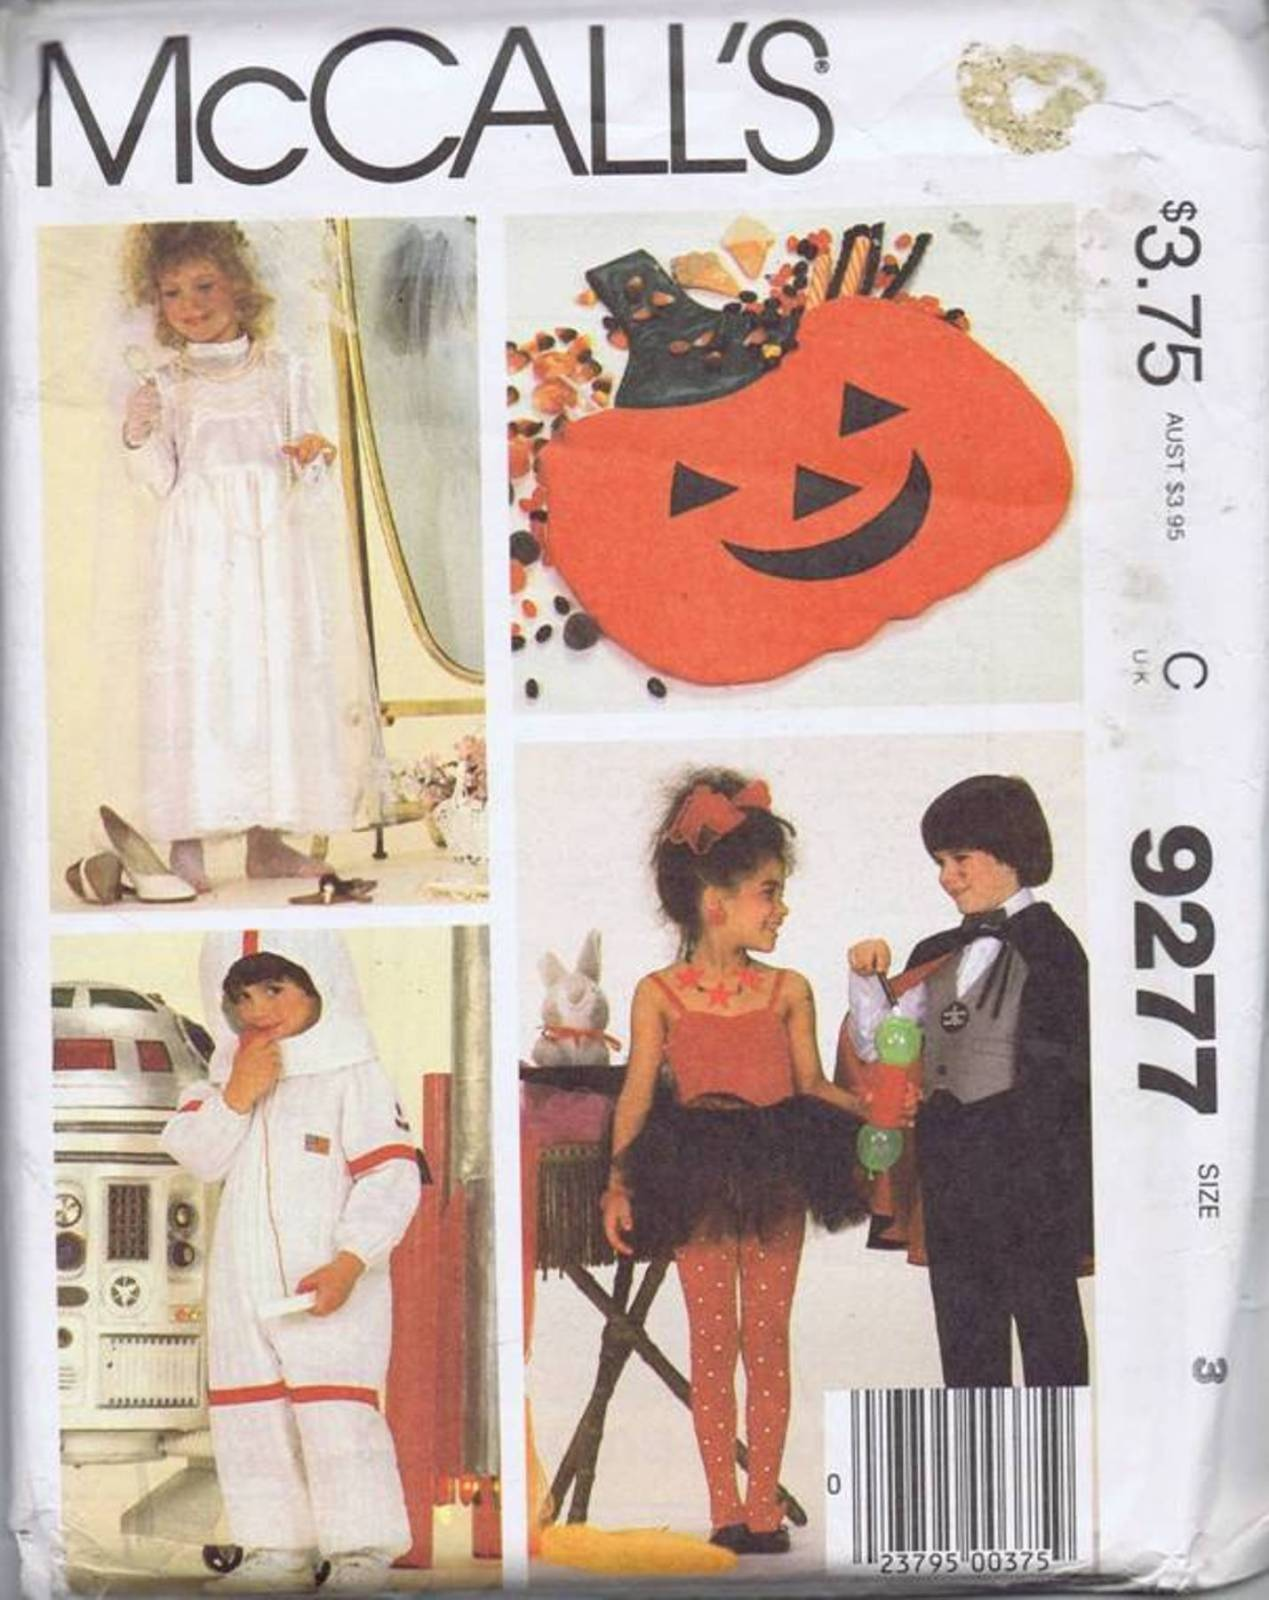 9277 McCalls Boys Girls Costume Sewing Pattern Astronaut Princess Bag Size 3 Here's a delightful costume sewing pattern for your toddler boy and girl in size 3, McCall's 9277 features a princess bride, astronaut, magician and a pumpkin shaped treats bag. SIZE 3 CHEST 22 WAIST 20.5""